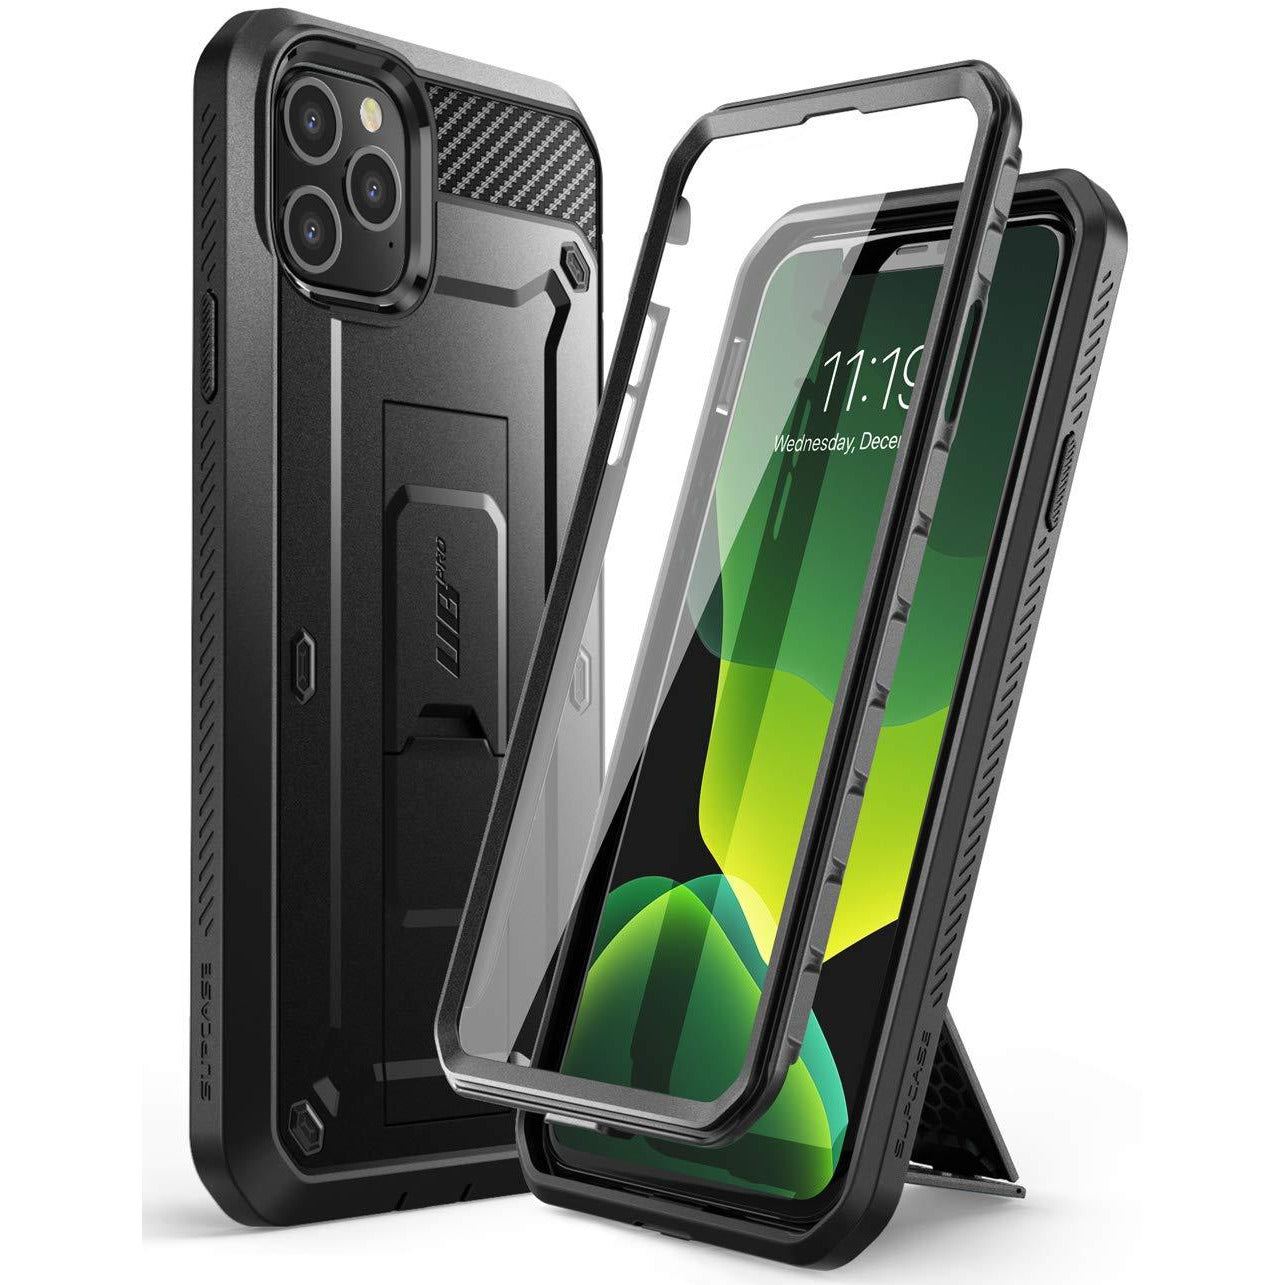 Supcase Unicorn Beetle Pro Series Case Designed for iPhone 11 Pro Max, Built-in Screen Protector Full-Body Rugged Holster Case (Black)